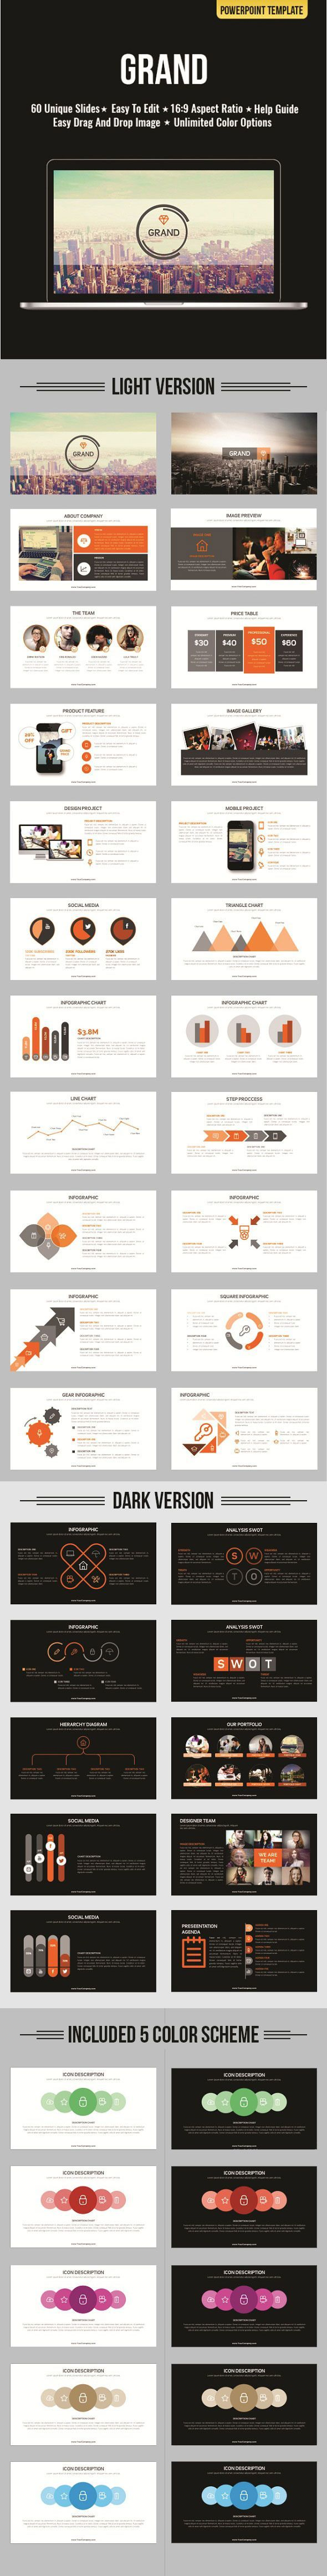 Grand PowerPoint Template #powerpoint #powerpointtemplate #presentation Download: http://graphicriver.net/item/grand-powerpoint/11924852?ref=ksioks: